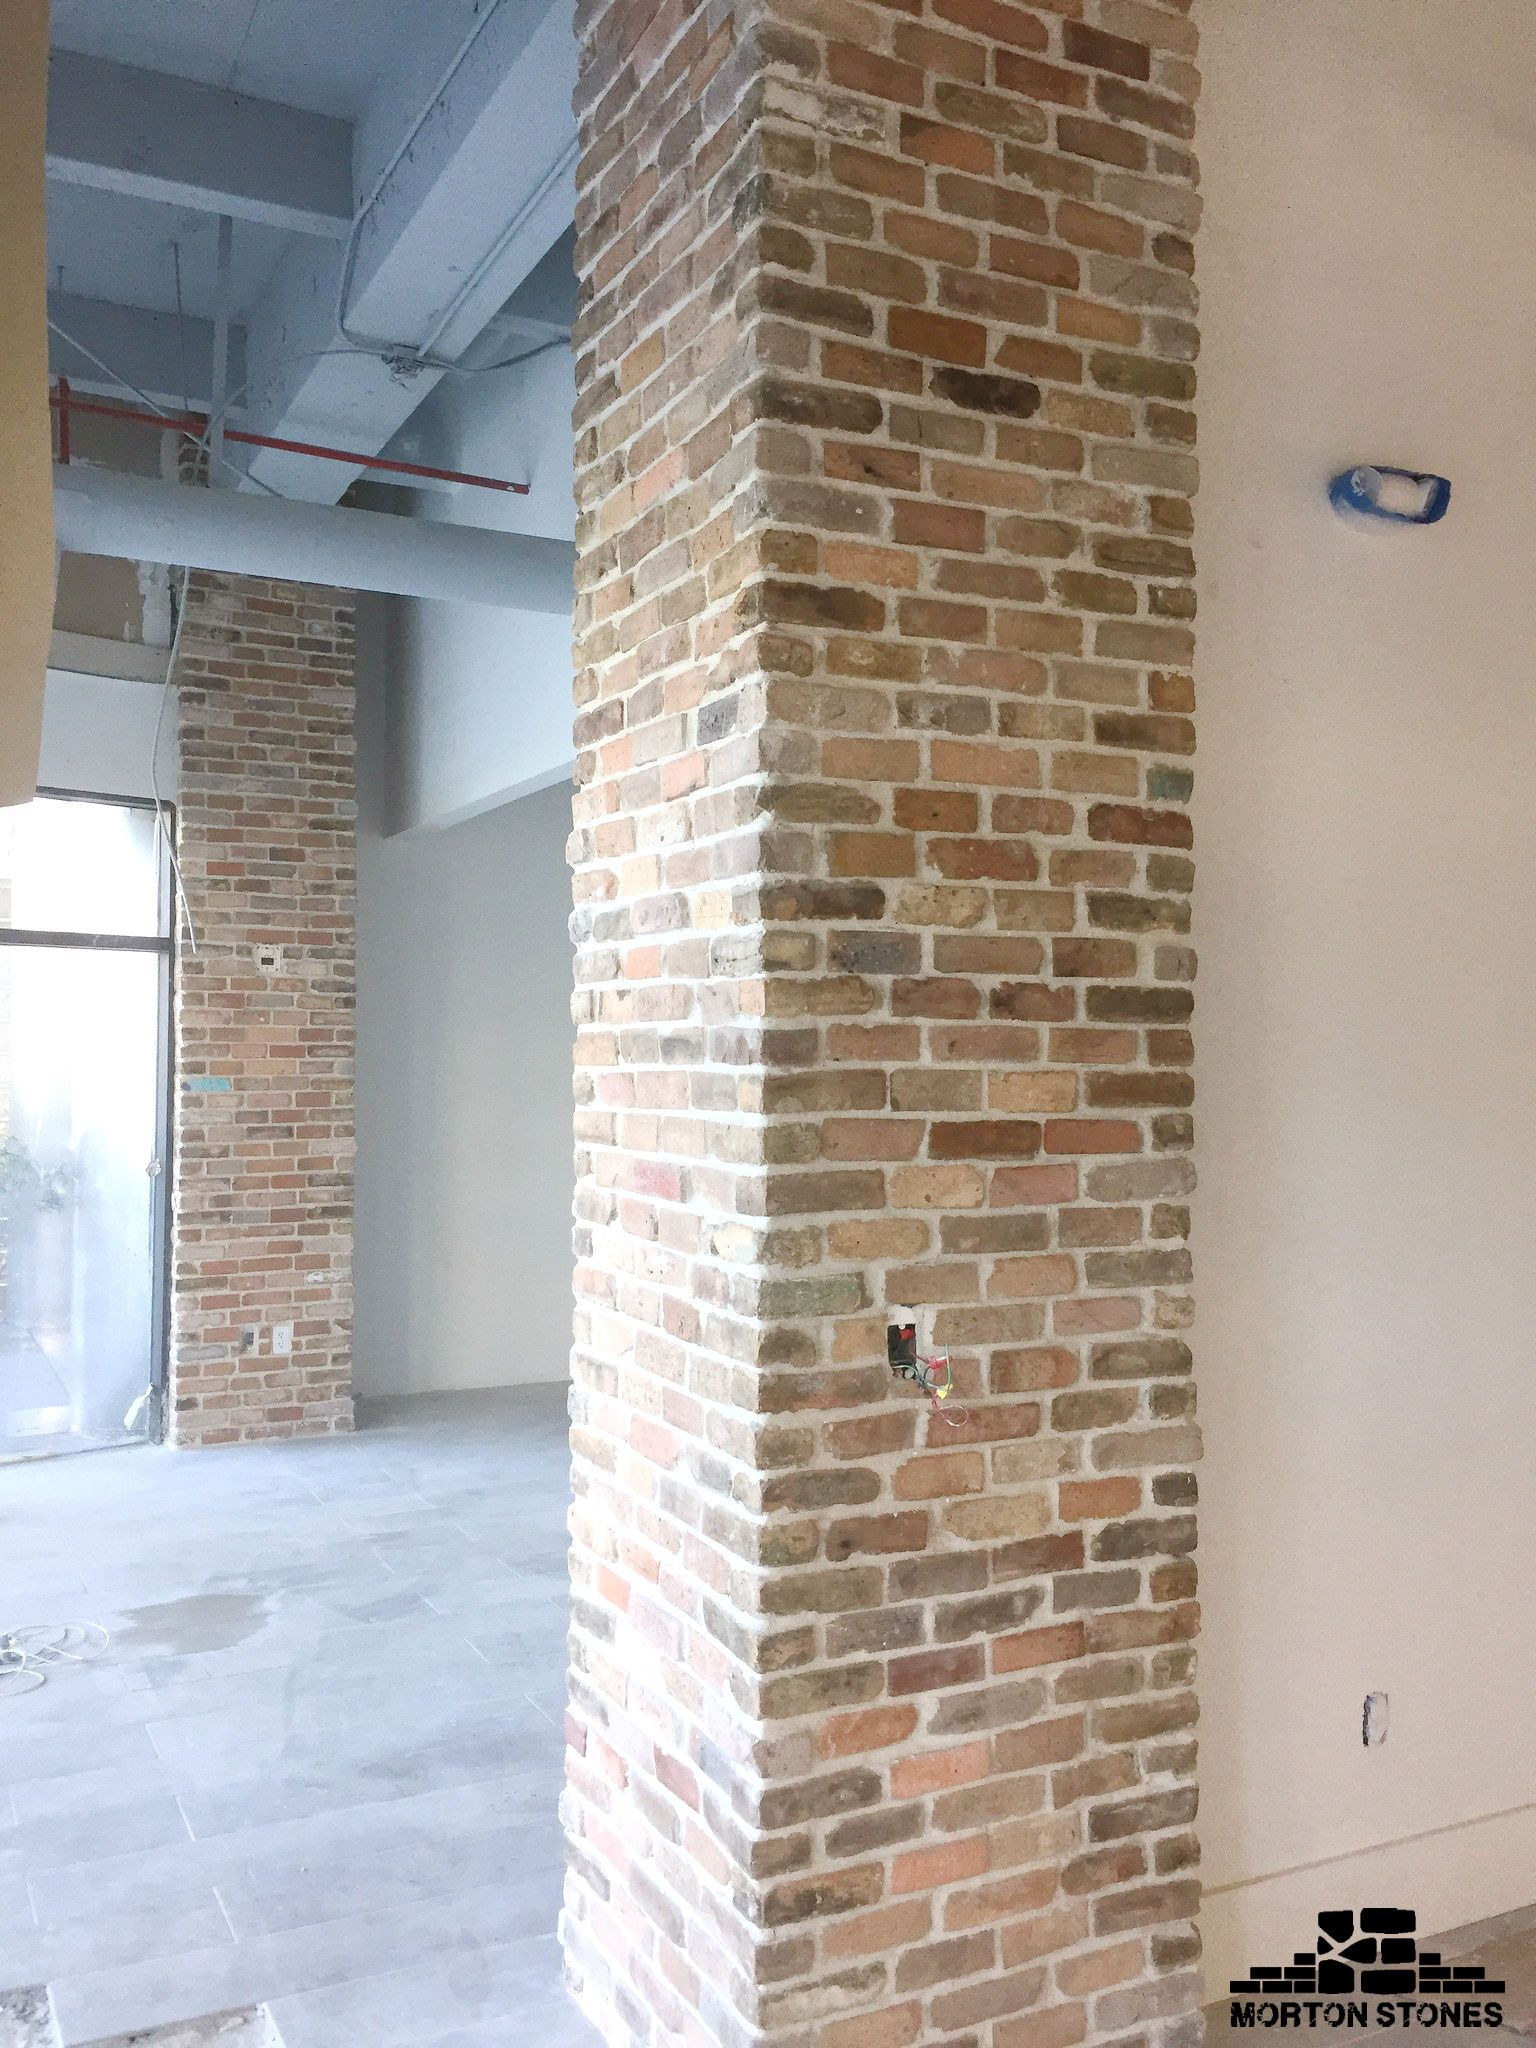 The Brick Veneer Columns Are A Clic